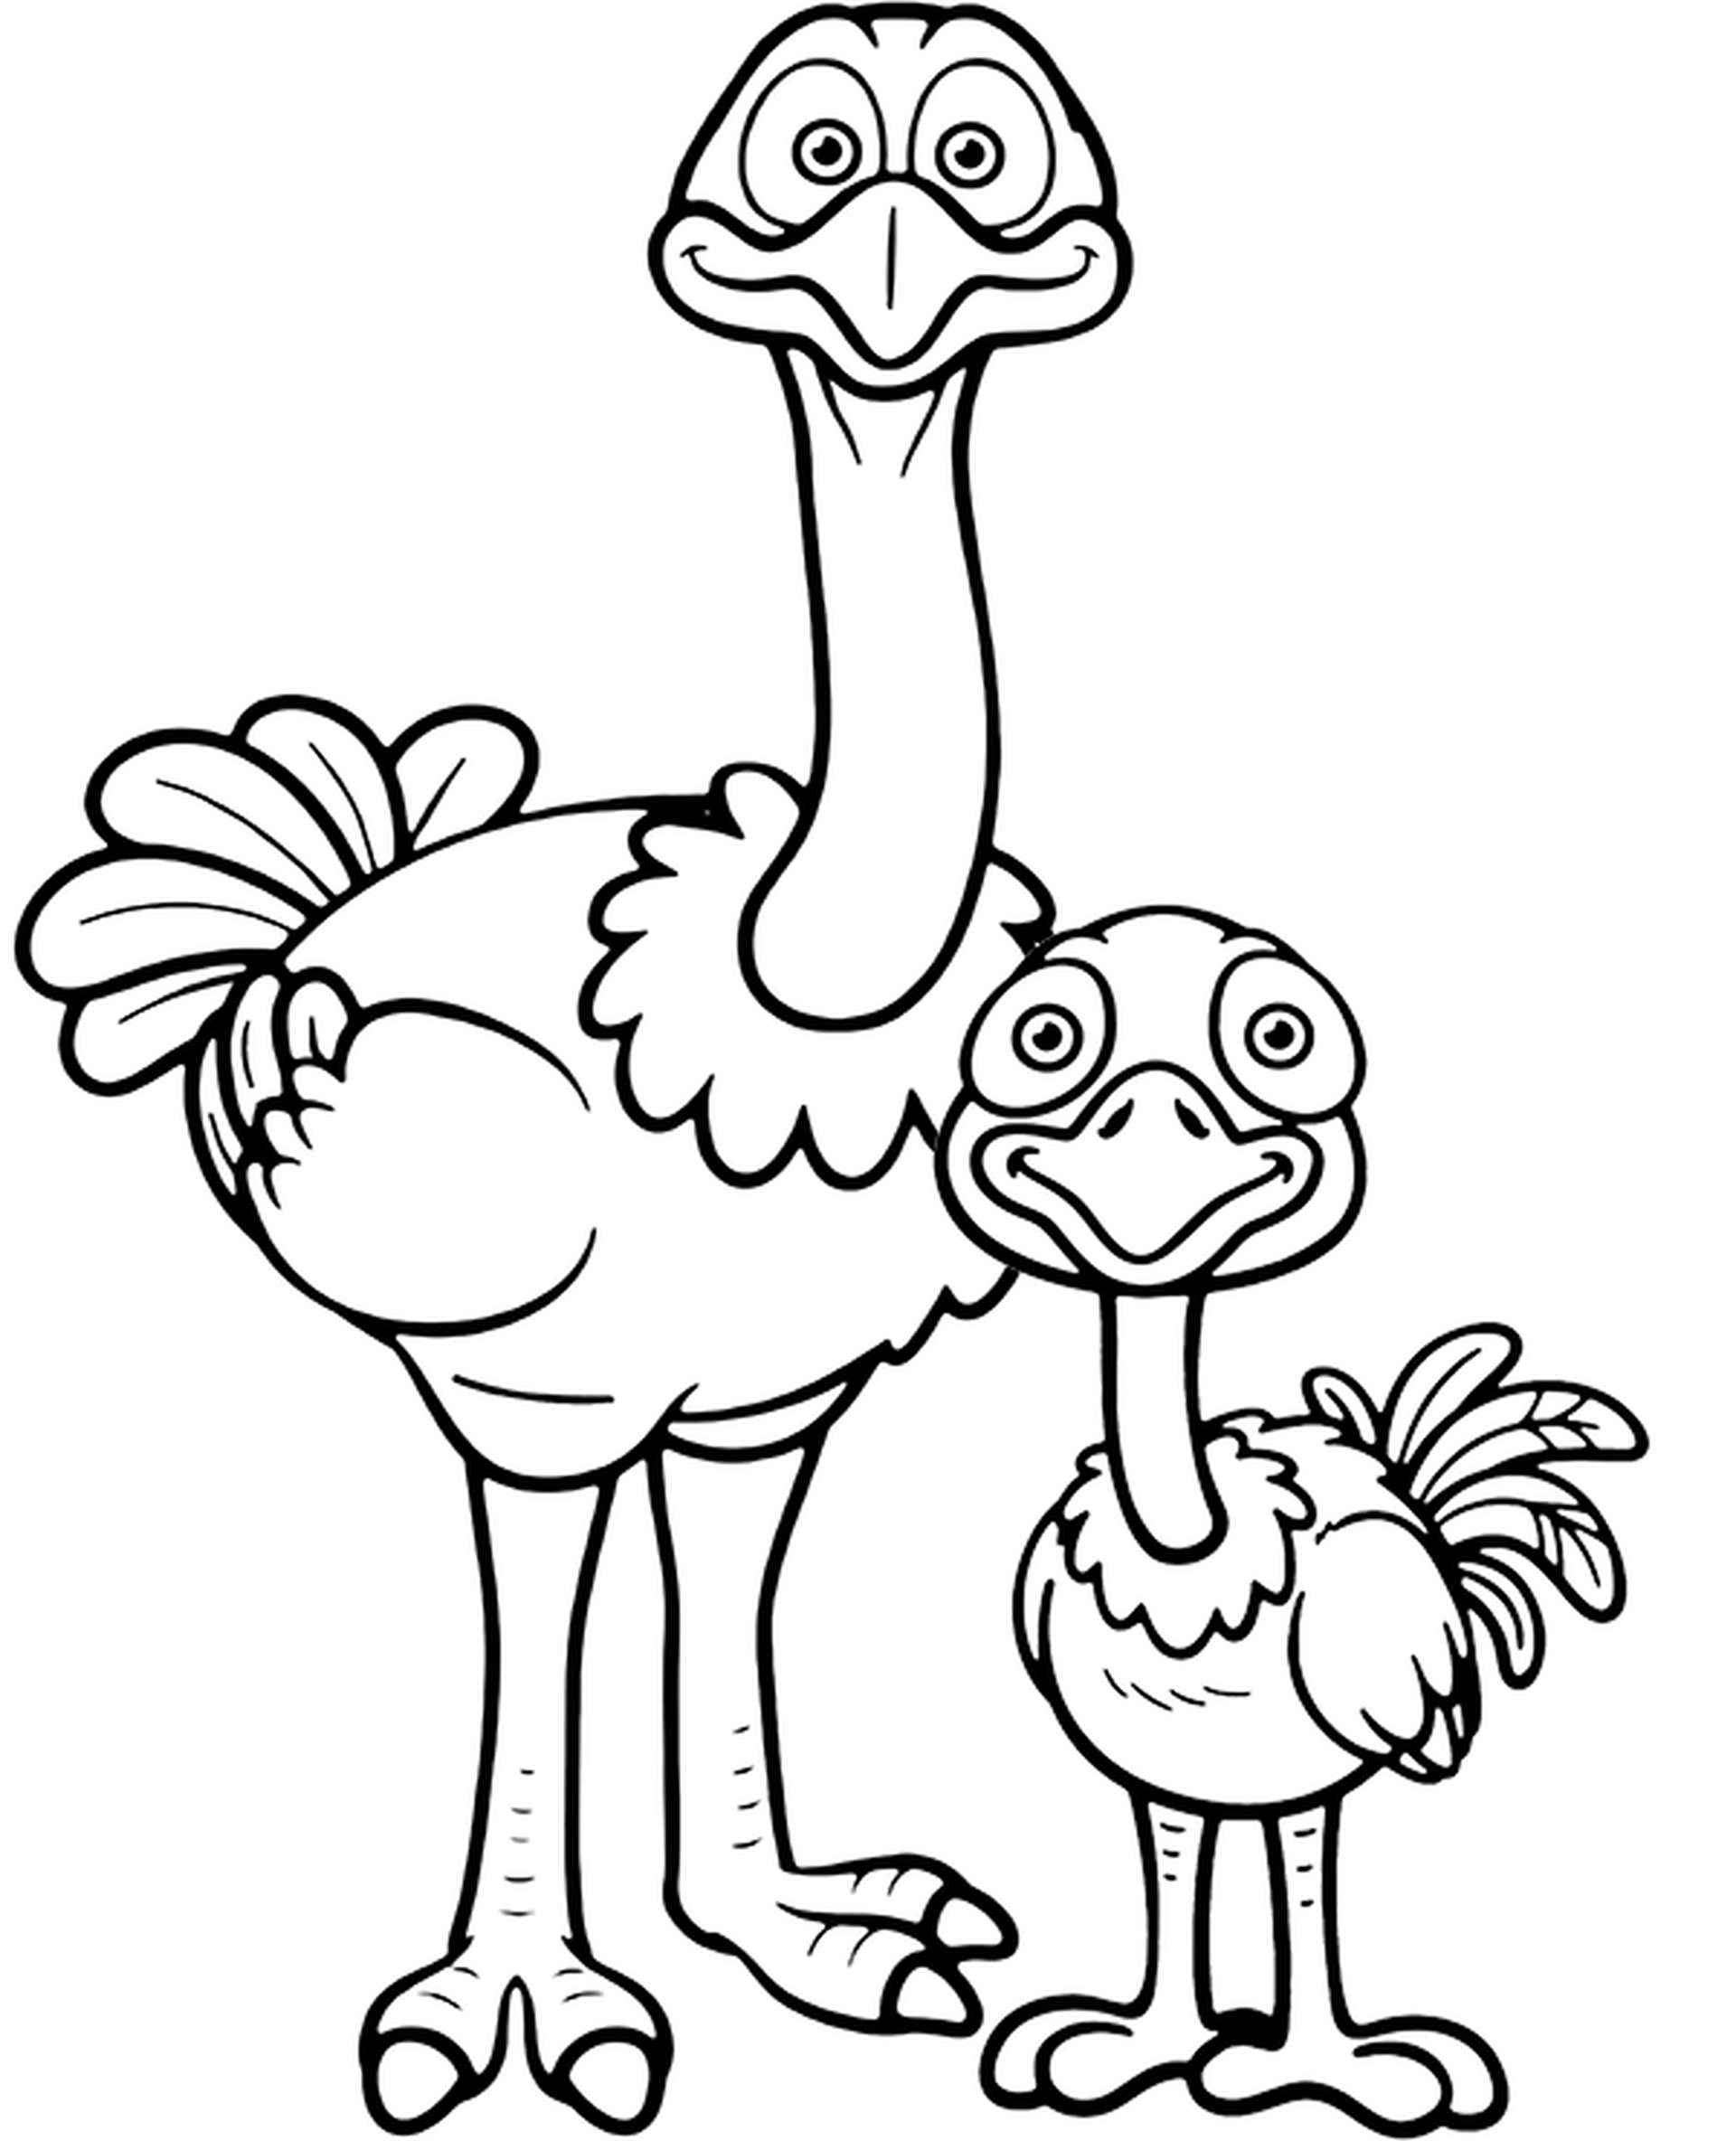 Adult Ostrich With A Young One Coloring Page